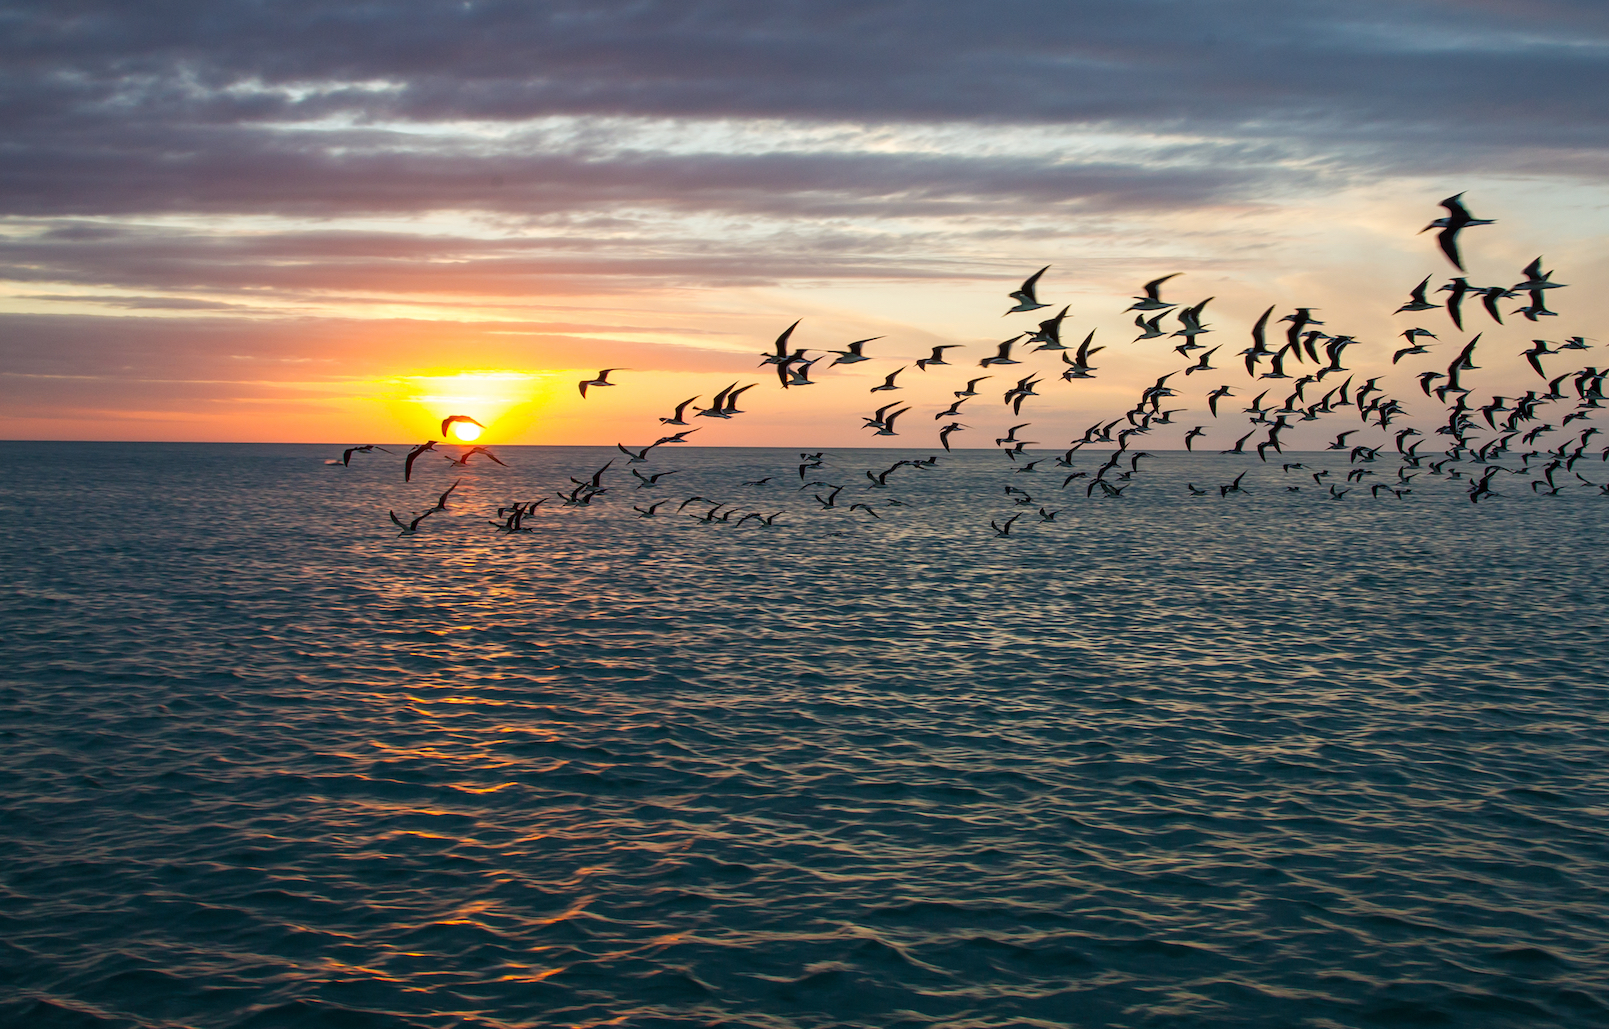 The Gulf of Mexico is a major stopping point for birds that migrate between North America and the Neotropics.